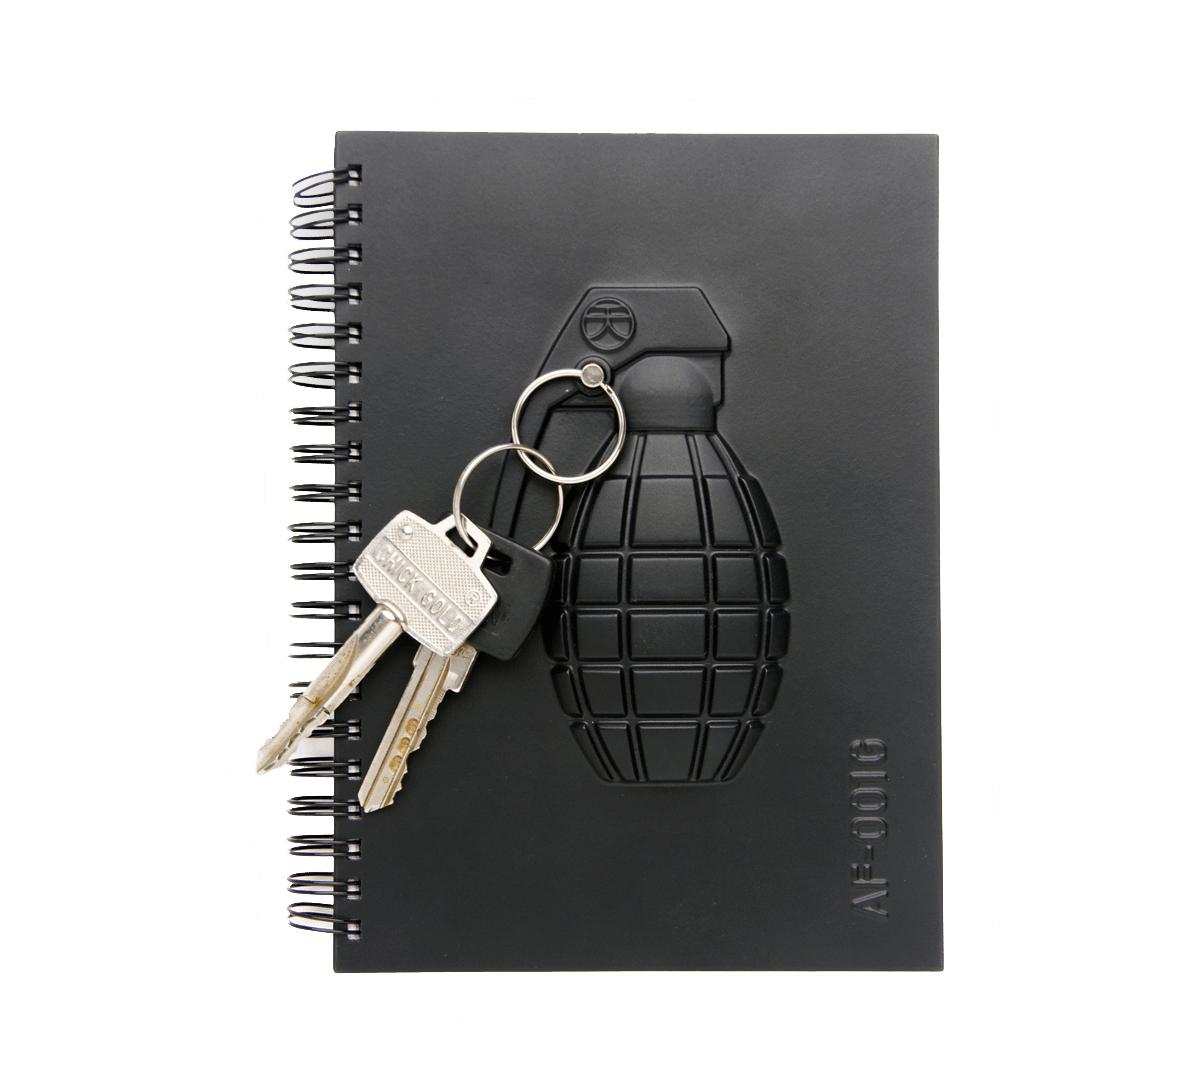 Armed Notebook – Grenade-0